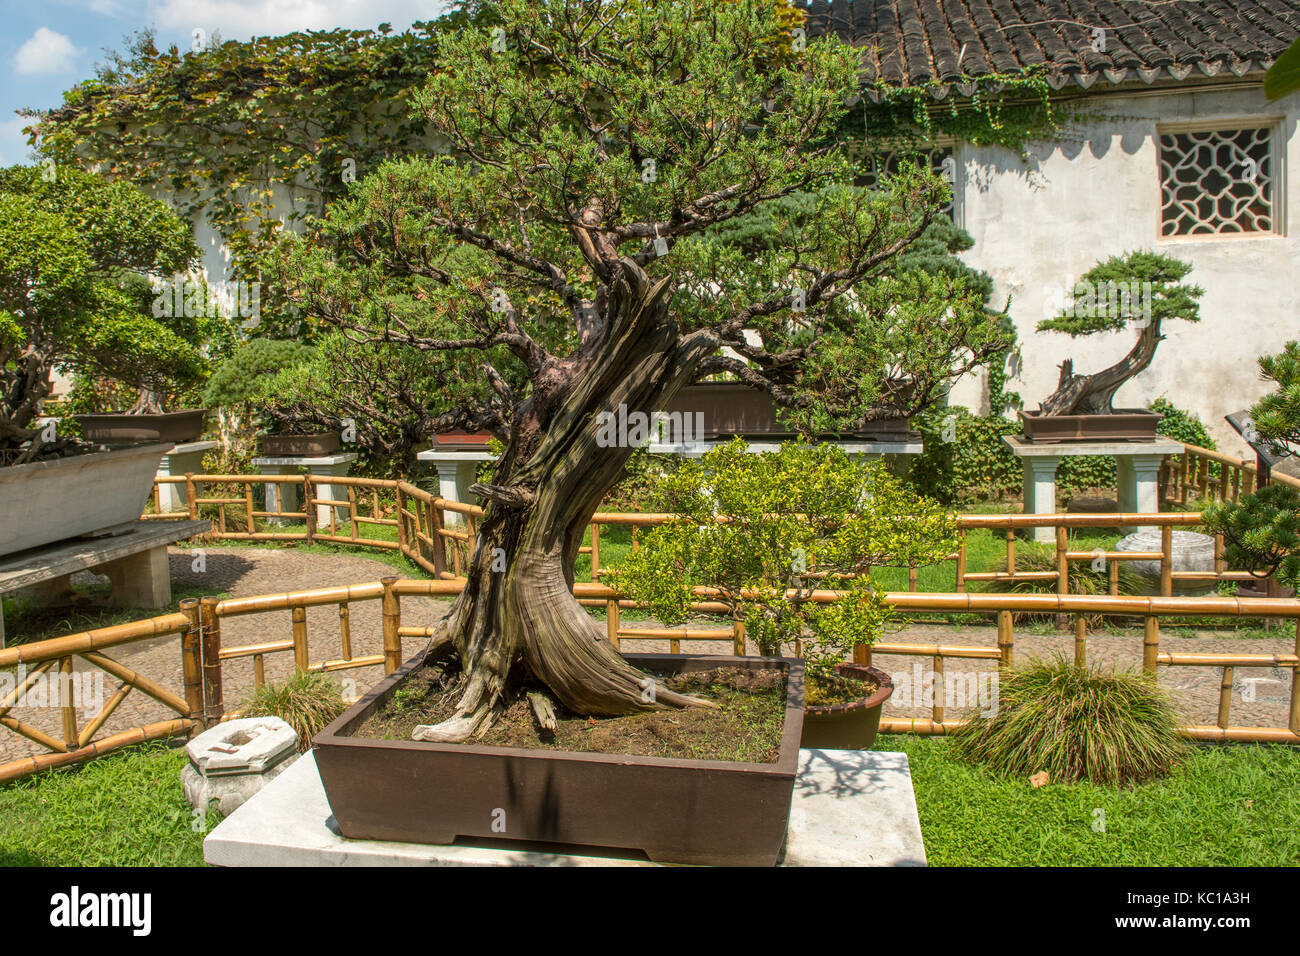 bonsai baum garten, bonsai baum in bonsai garten, den lingering garten, suzhou, china, Design ideen